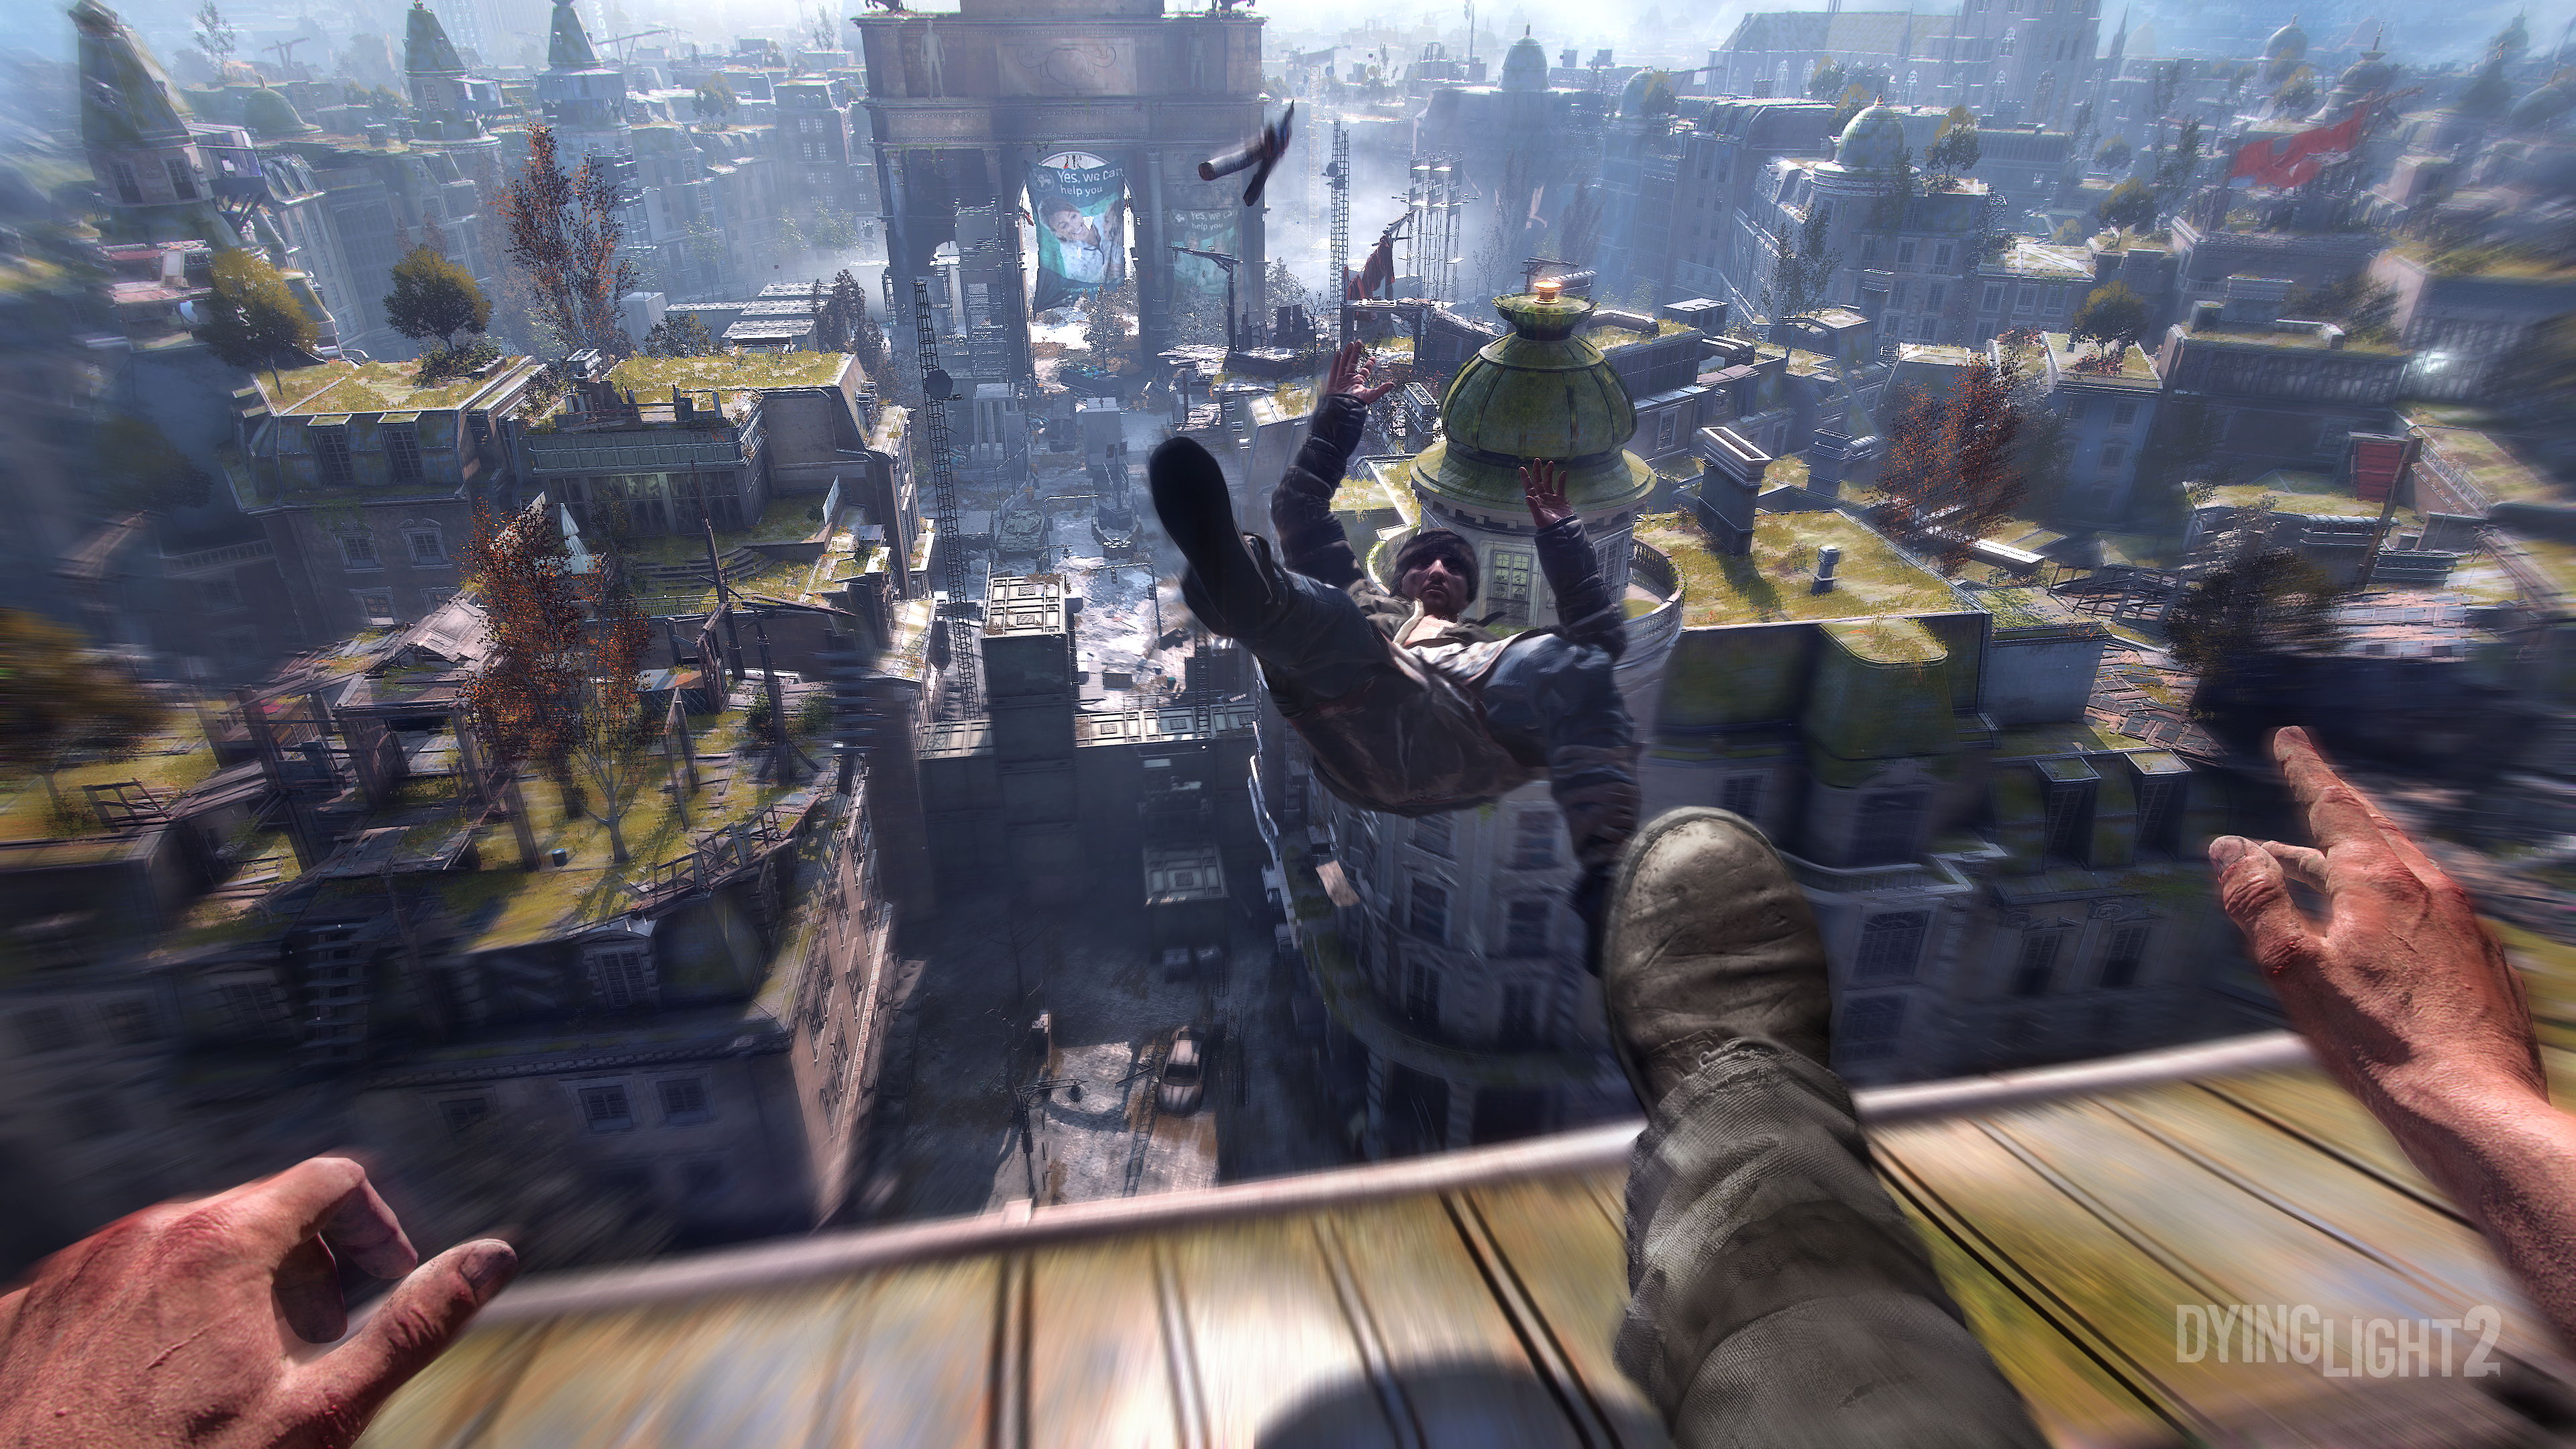 Photo of Square Enix's Dying Light 2 Gameplay Trailer Showcased Amazing Parkour Features